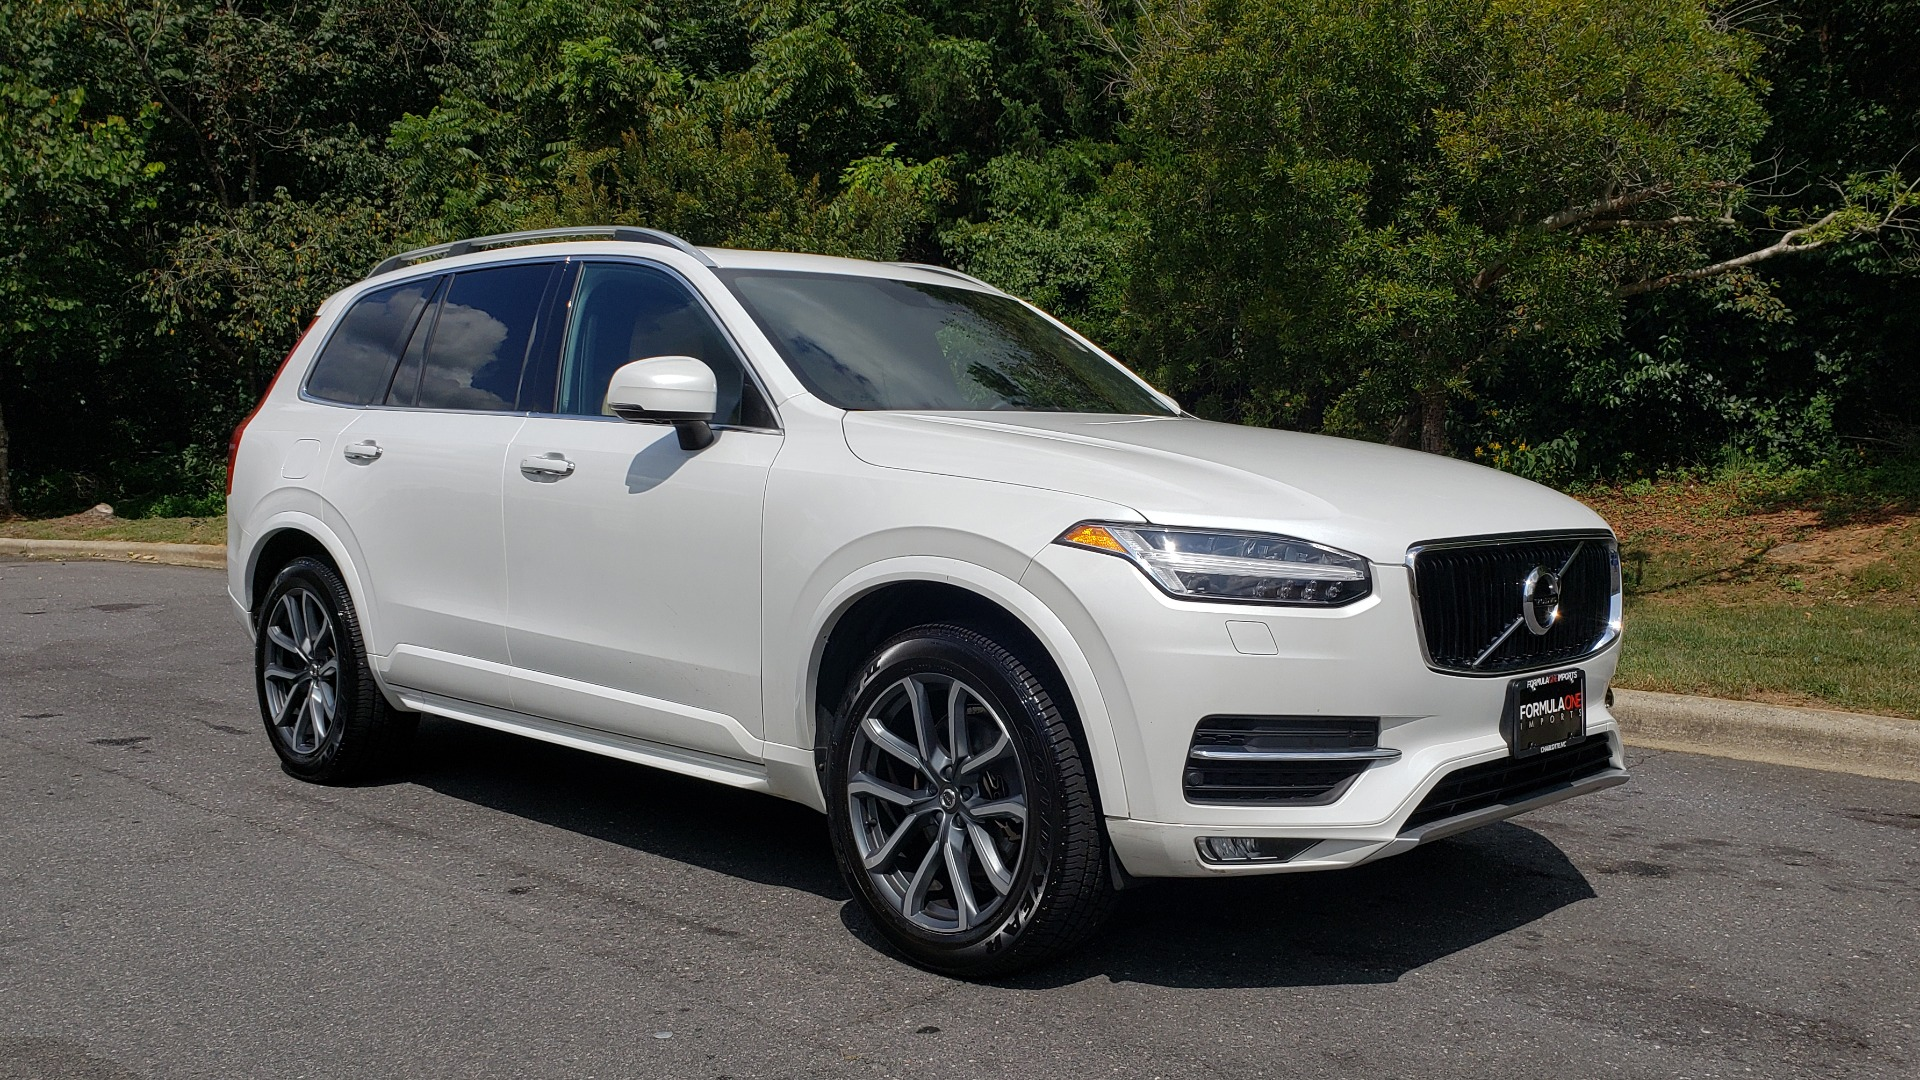 Used 2017 Volvo XC90 MOMENTUM PLUS T6 AWD / NAV / VISION / PROTECTION PKG for sale $34,995 at Formula Imports in Charlotte NC 28227 3